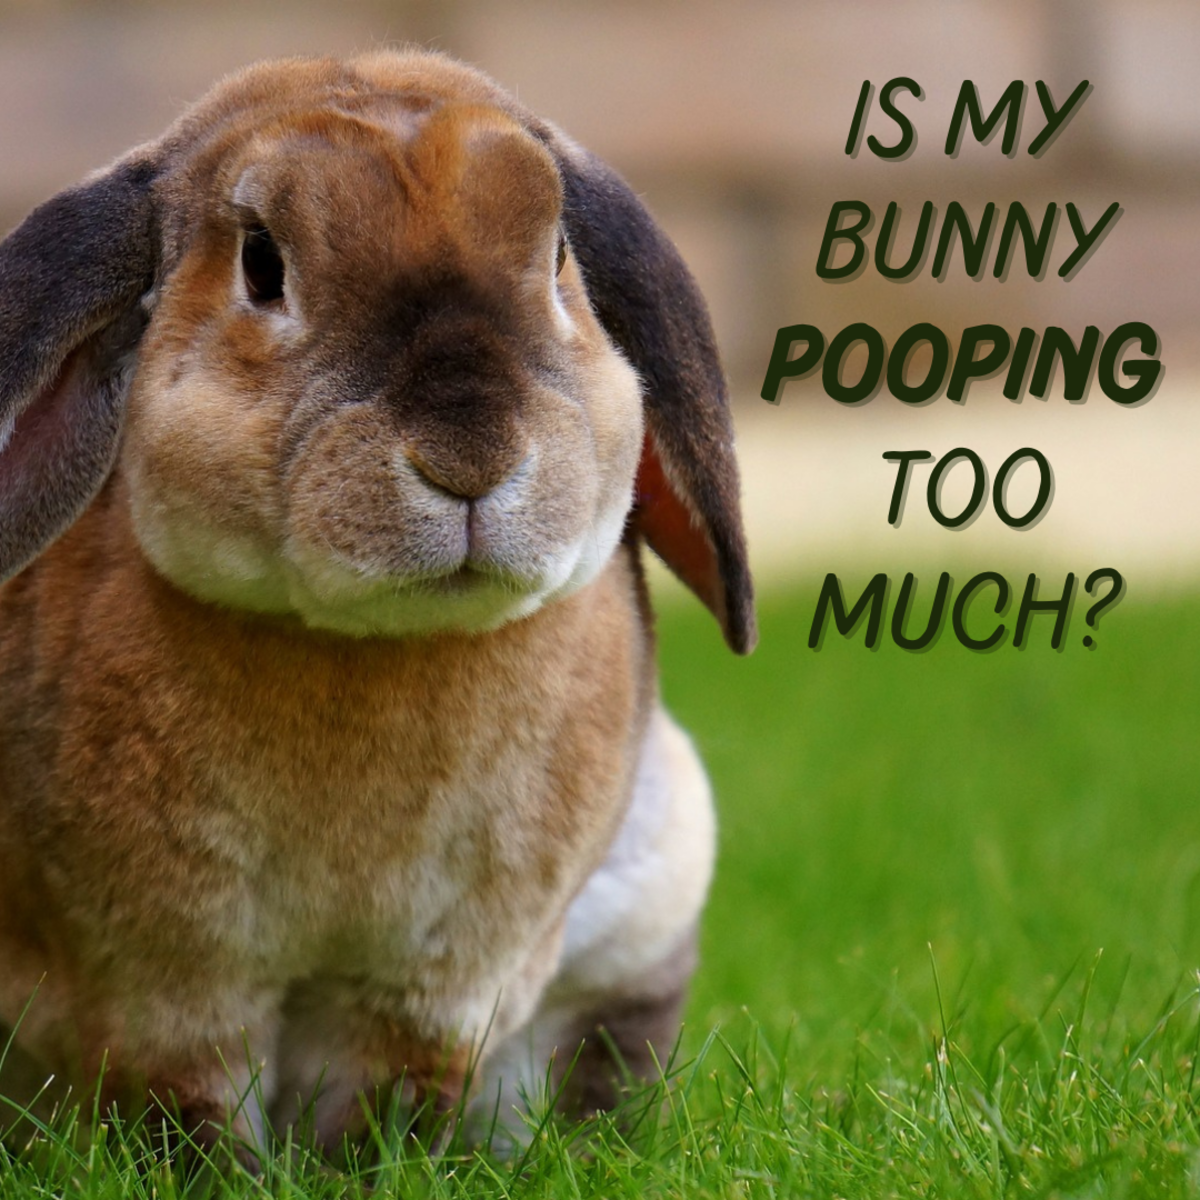 Bunnies poop a lot, but is there such a thing as too much poop? Find out what to watch out for in your bunny's toilet habits.